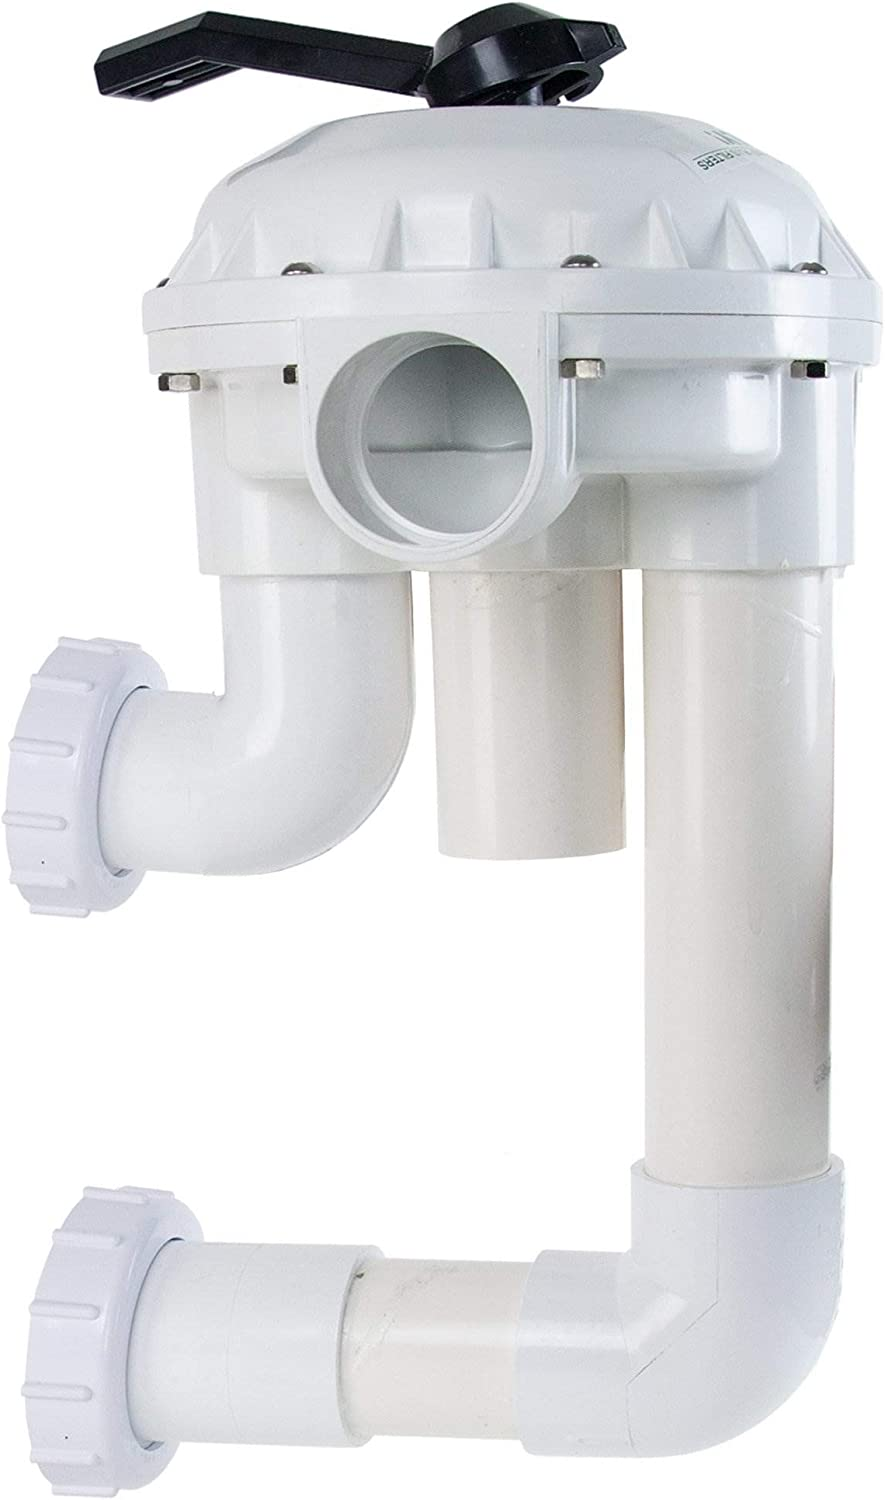 Pentair 261142 2-Inch HiFlow Time sale Valve Plumbing Poo Low price Replacement with